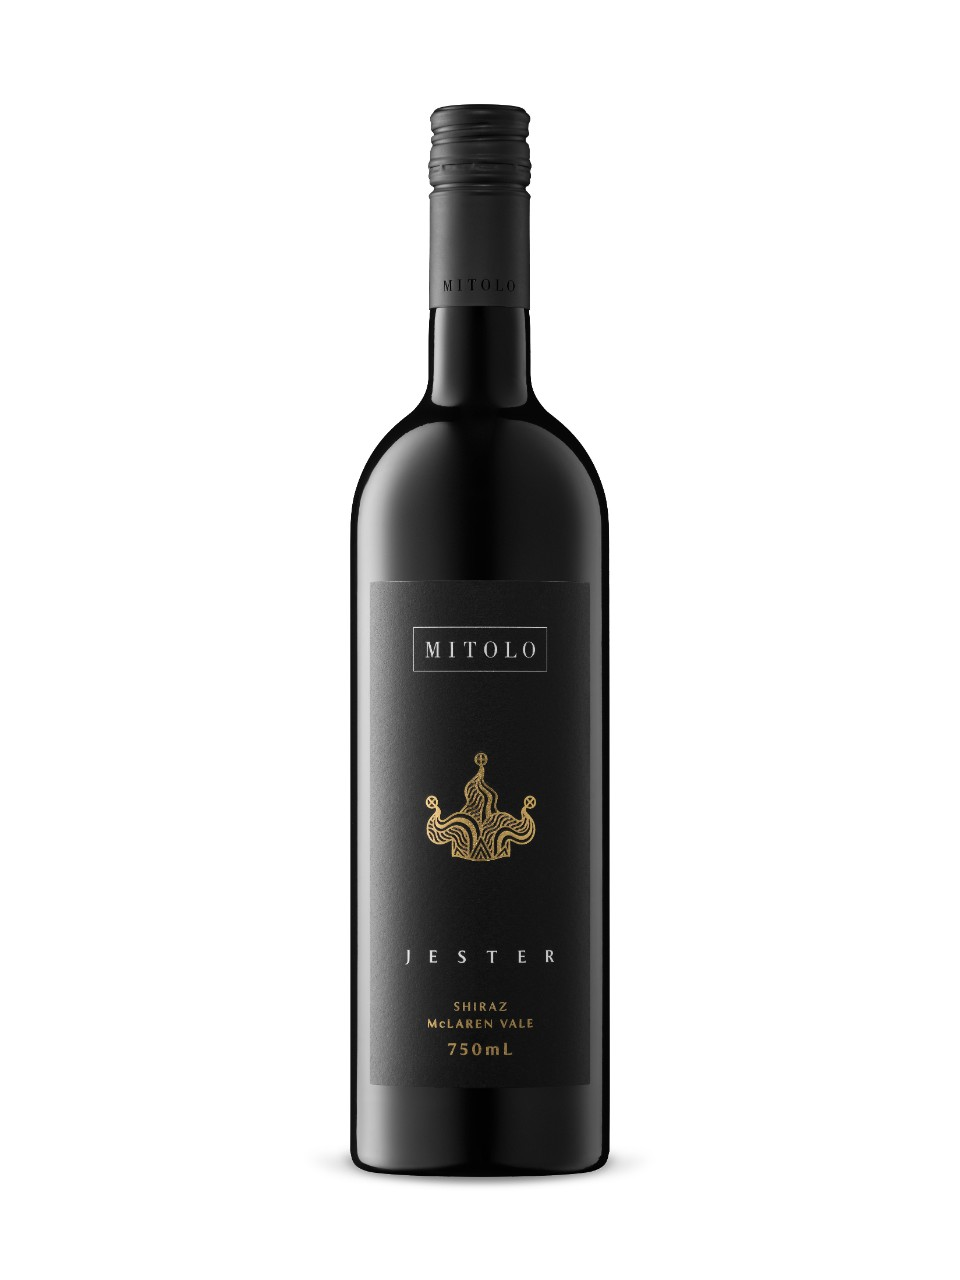 Mitolo Jester Shiraz from LCBO